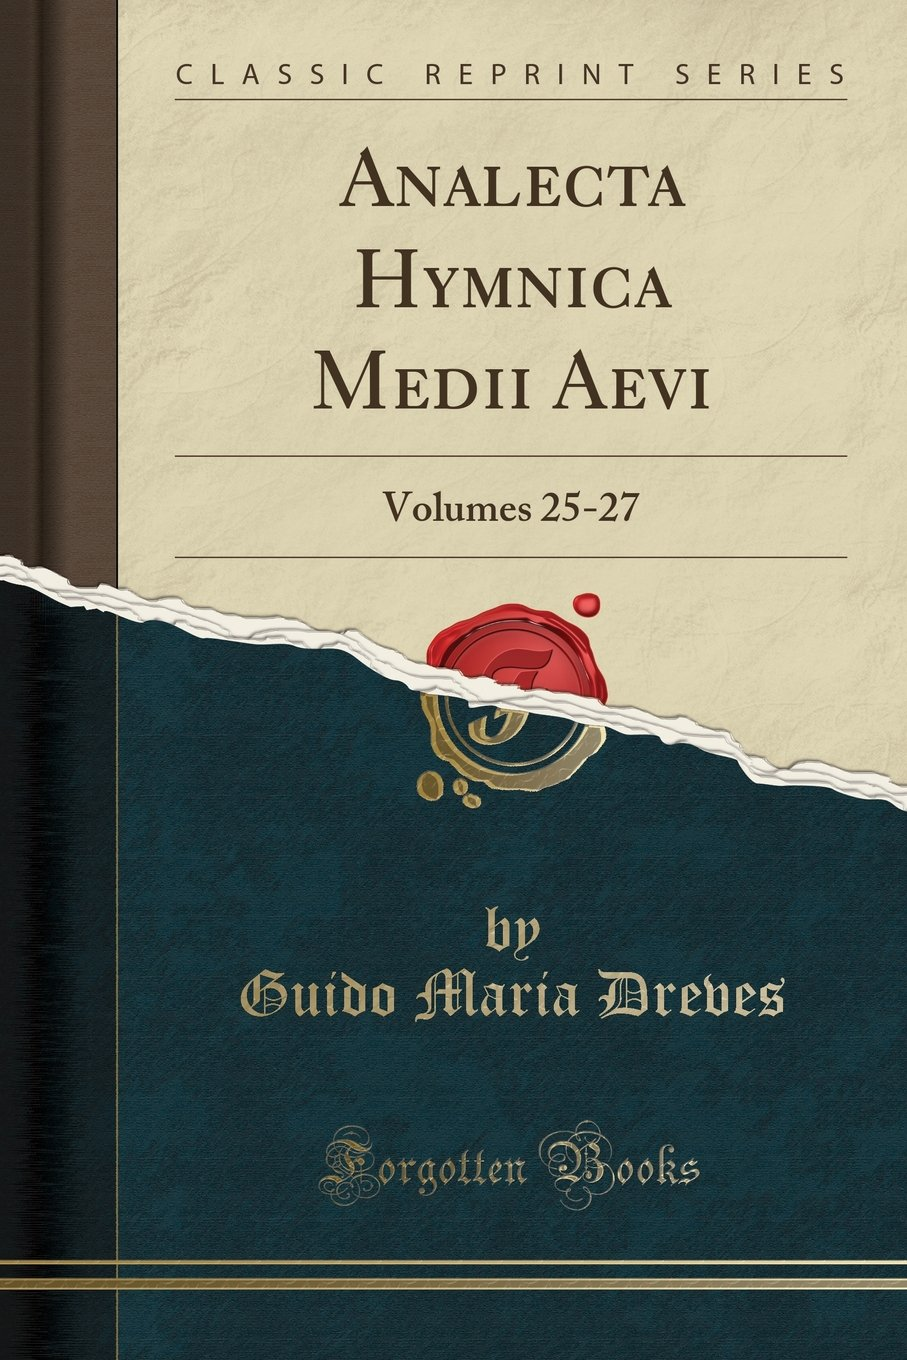 Analecta Hymnica Medii Aevi: Volumes 25-27 (Classic Reprint) (German Edition) pdf